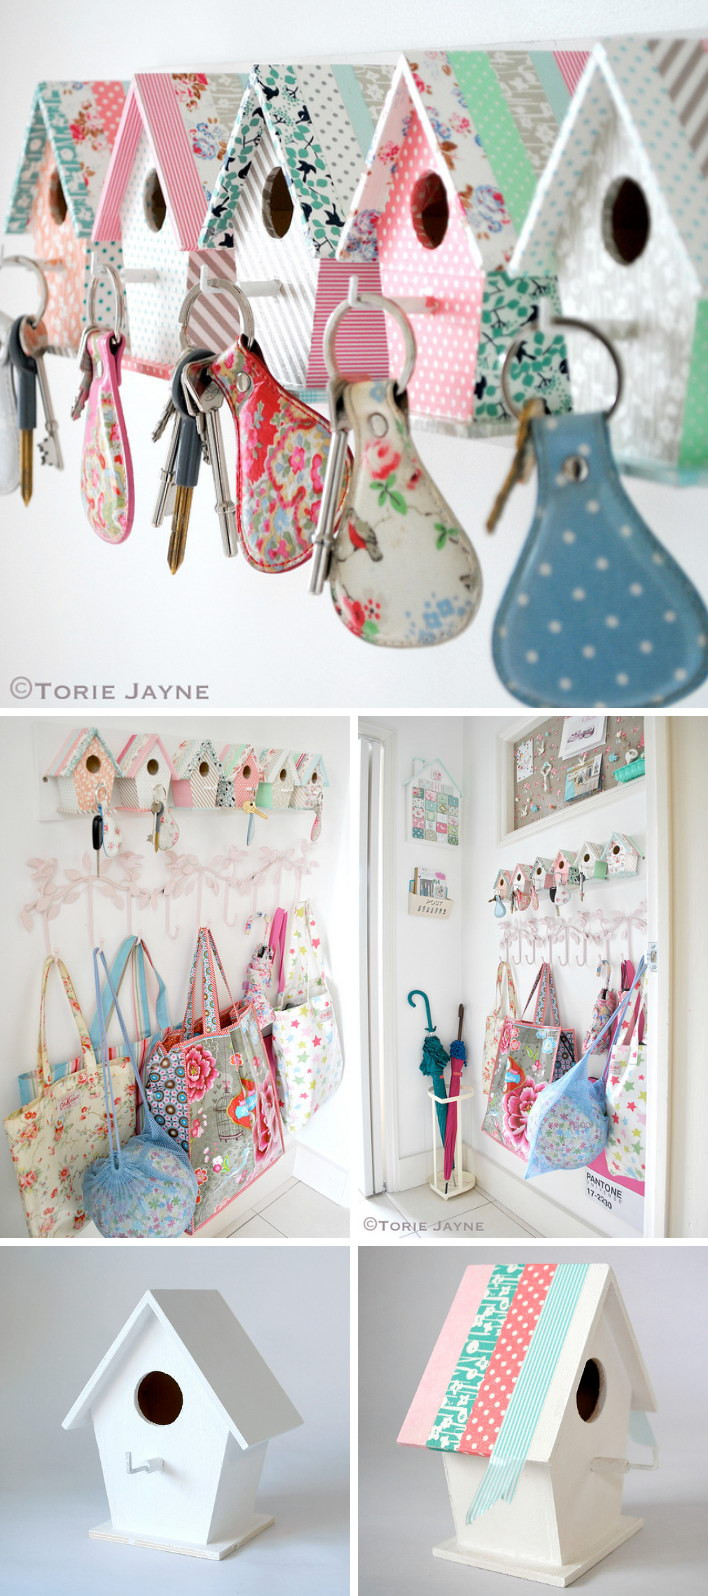 Best ideas about DIY Room Decor For Teens . Save or Pin 25 DIY Ideas & Tutorials for Teenage Girl s Room Now.